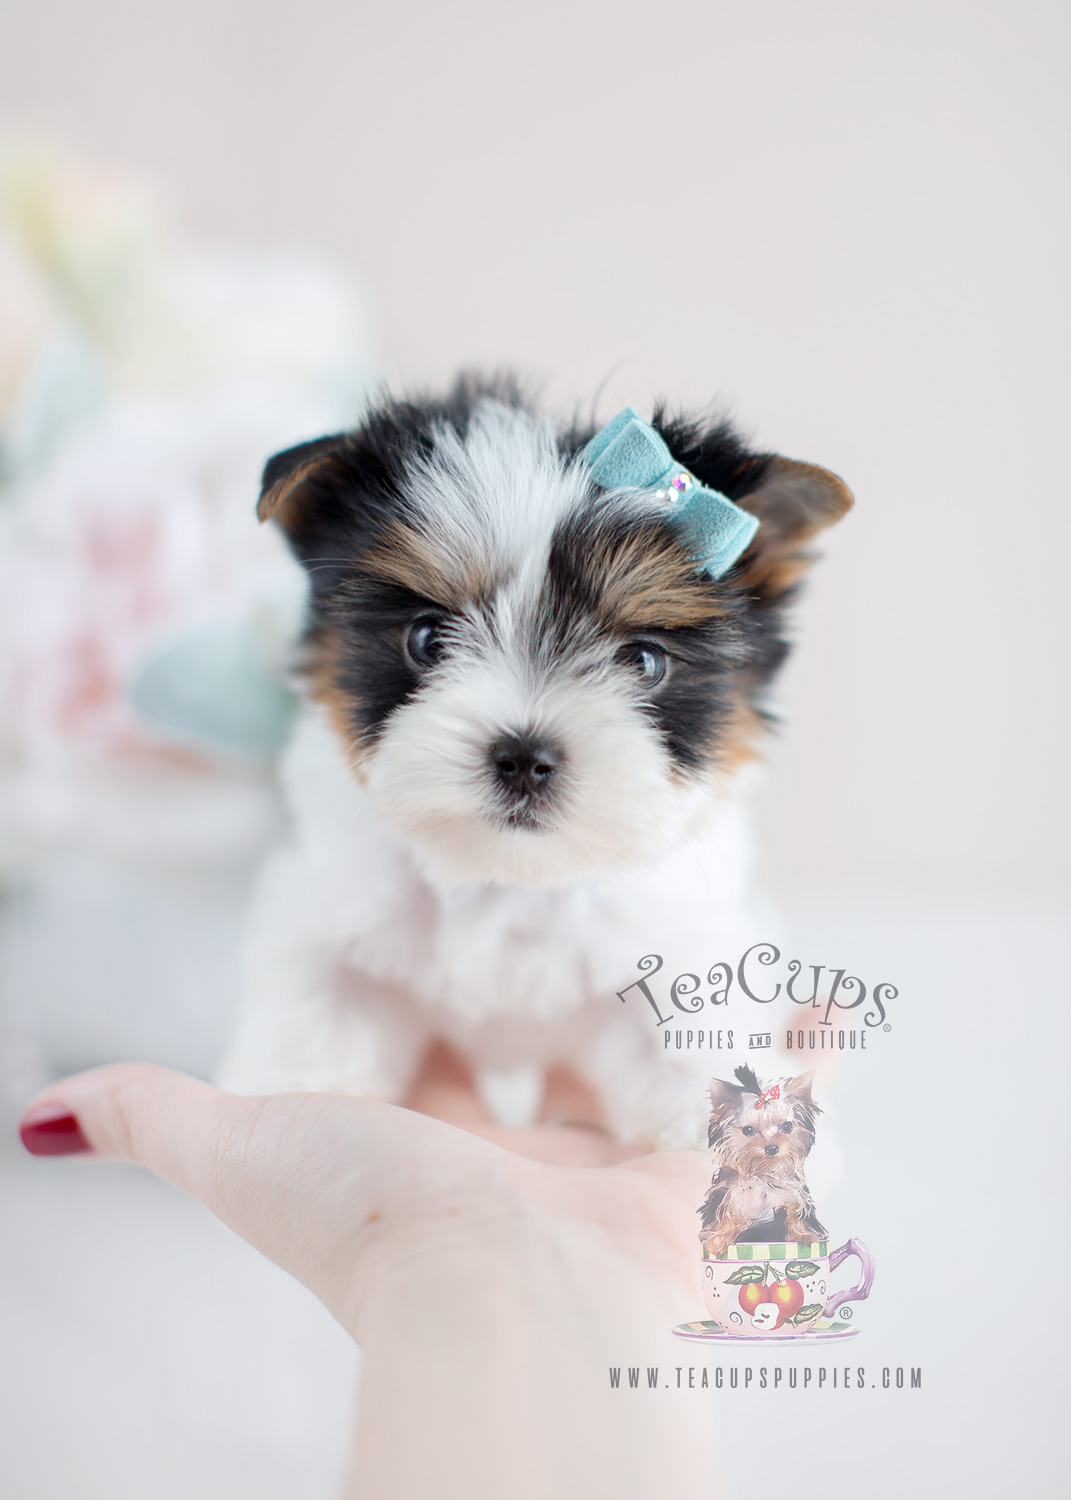 For Sale #075 Teacup Puppies Biewer Yorkie Puppy